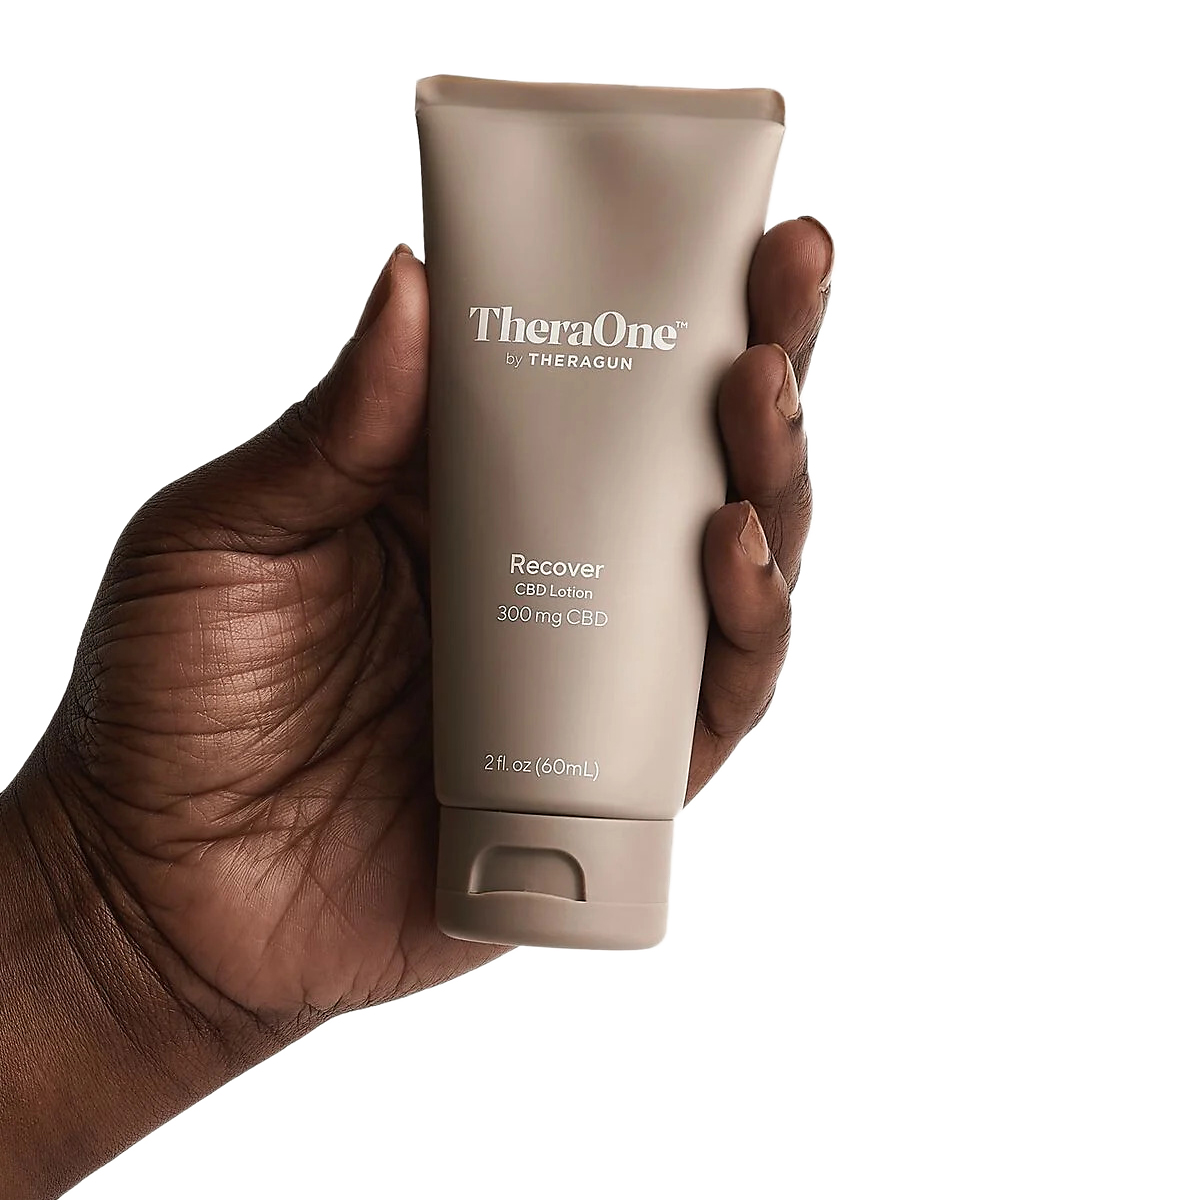 TheraOne Recover CBD Lotion - Size: One Size, , large, image 4